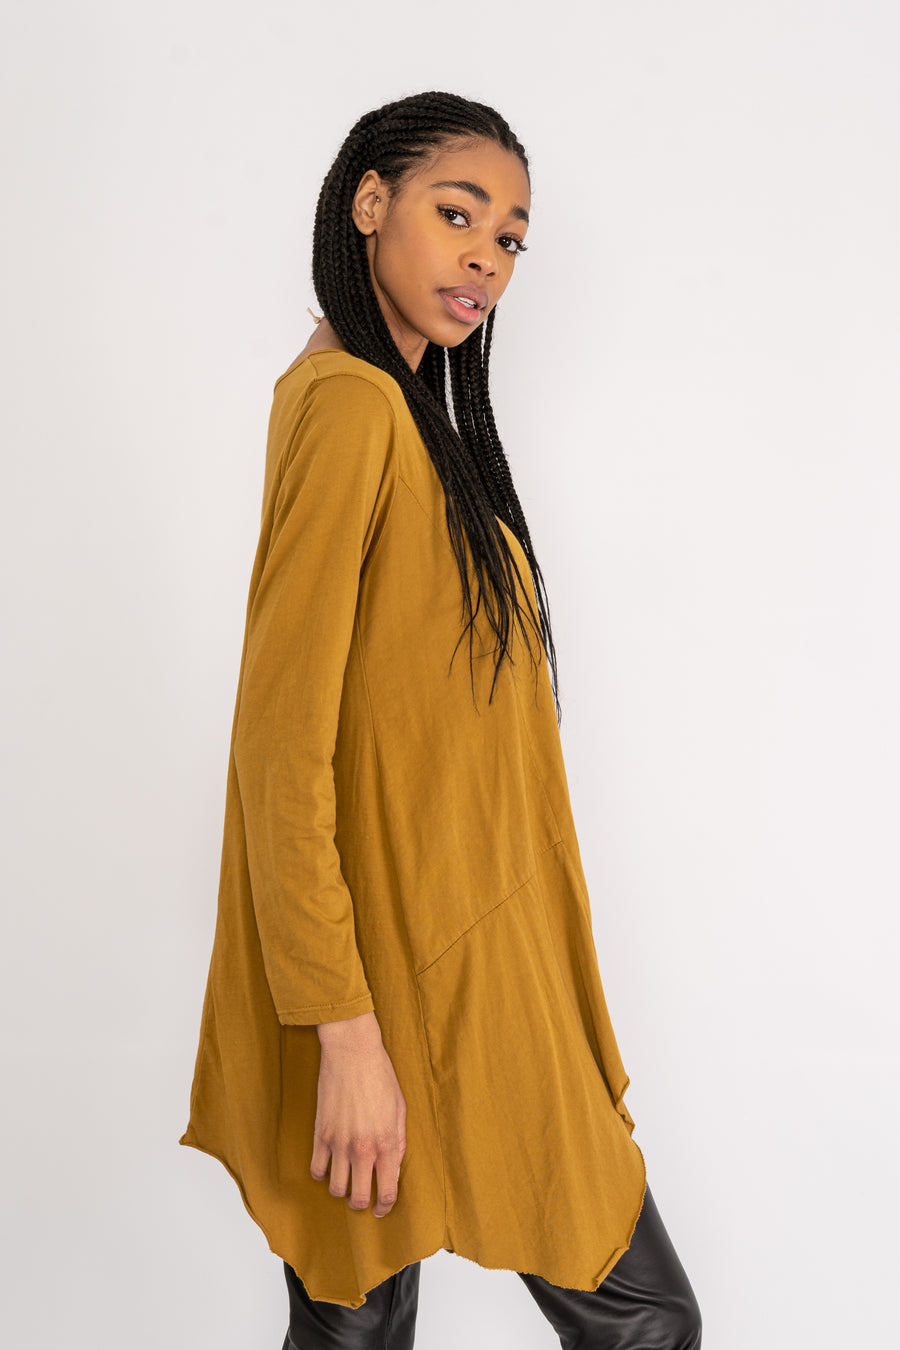 Long sleeve top with dip hem.